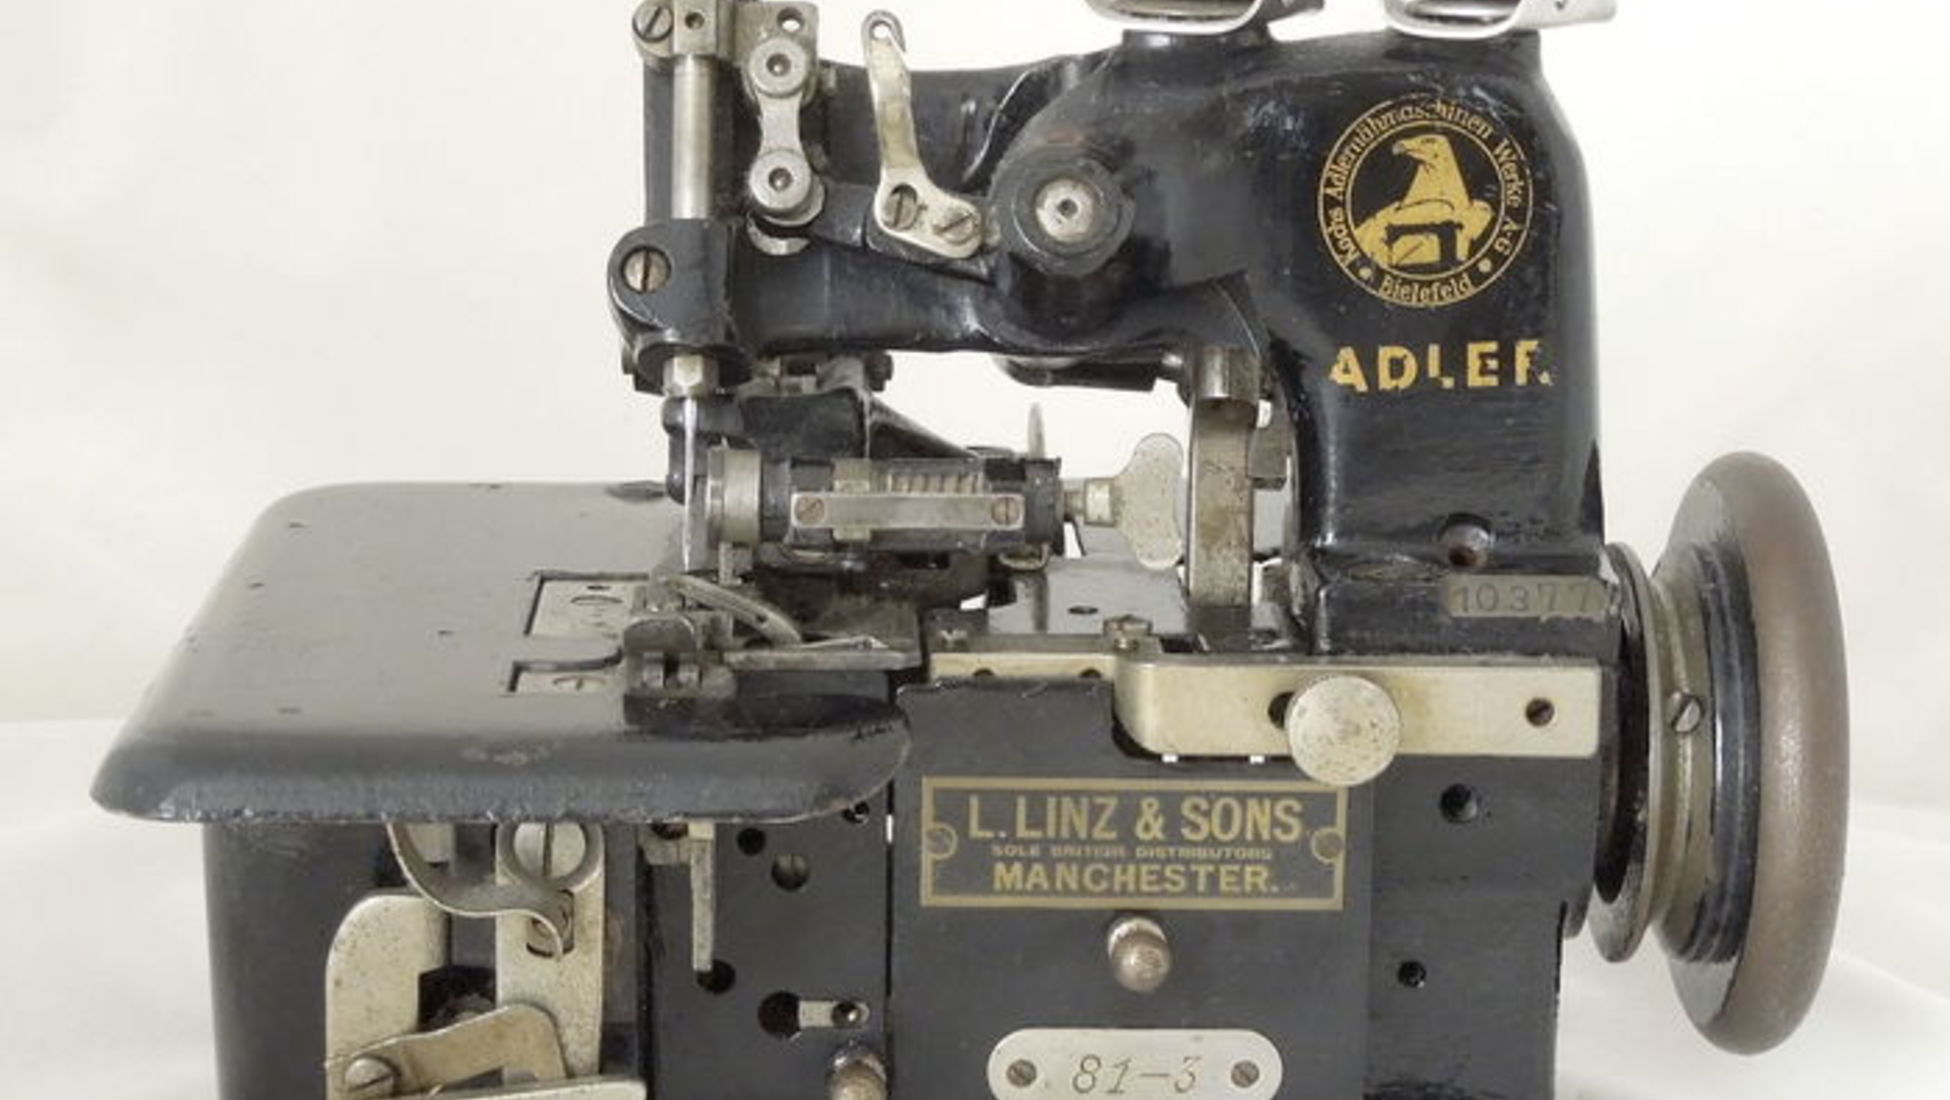 How To Determine The Value Of Your Old Sewing Machine Catawiki Atlas Threading Diagram Valuable Machines At It Can Be Useful Understand What Sells Well Auction Take A Look Five Most Expensive